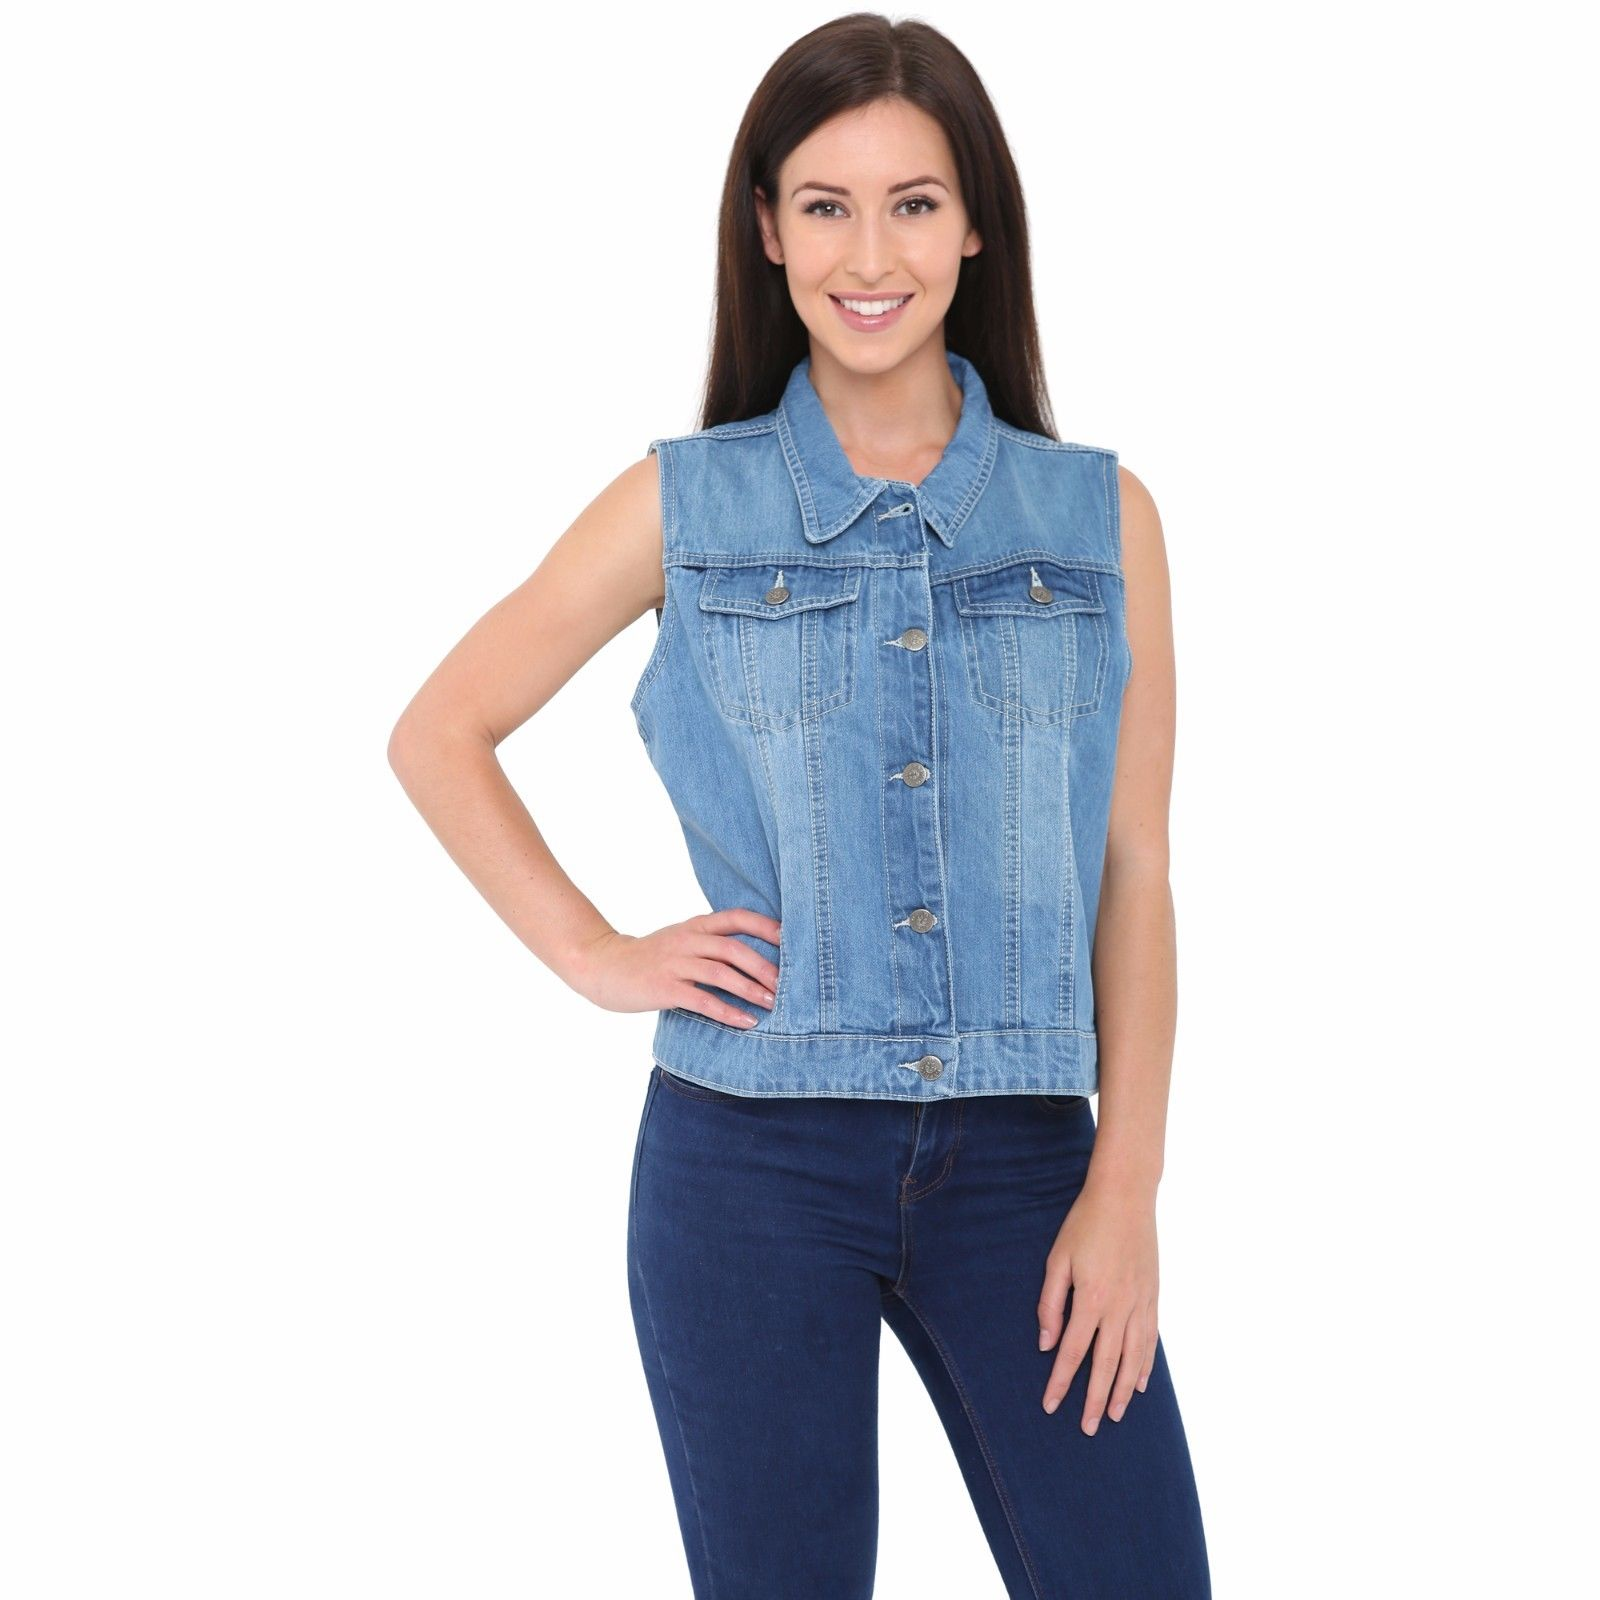 Shop for denim vest online at Target. Free shipping on purchases over $35 and save 5% every day with your Target REDcard.